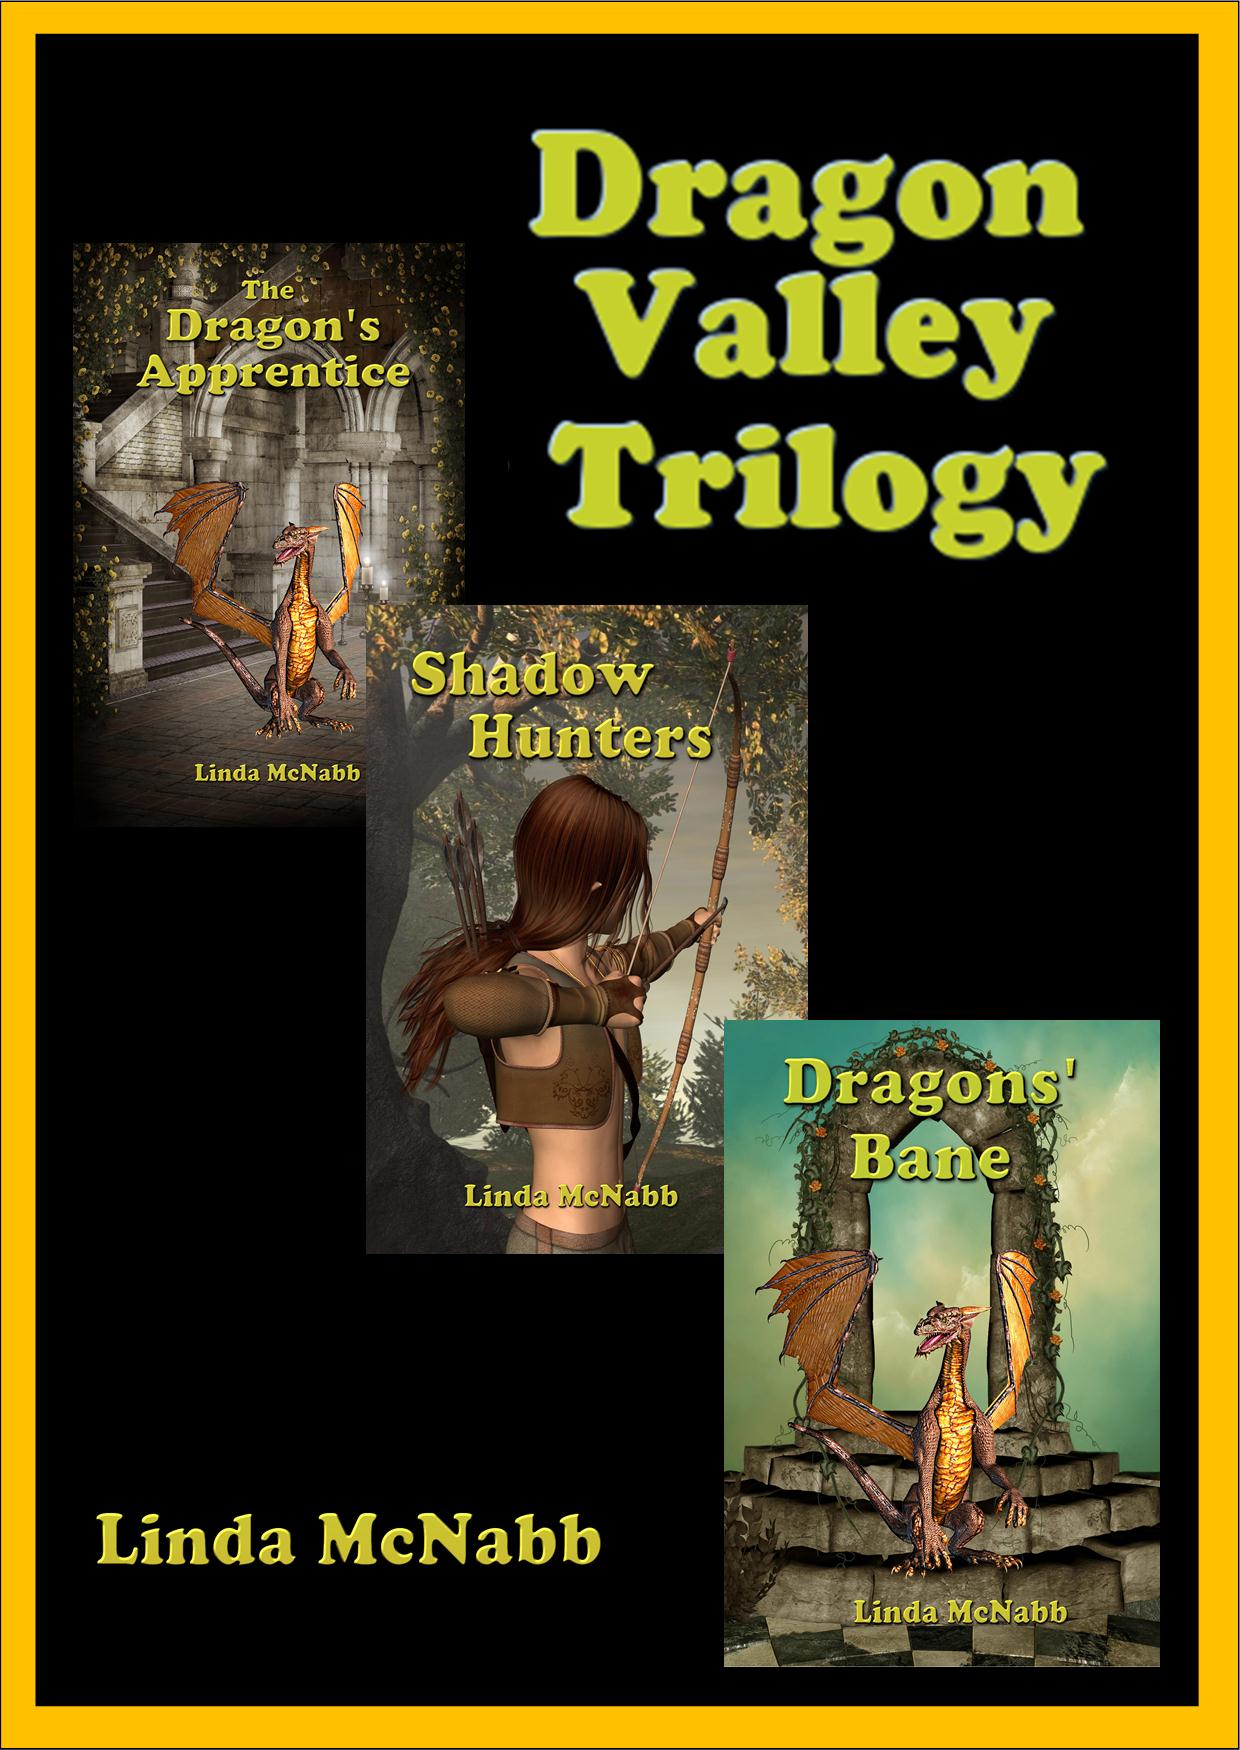 Dragon Valley Trilogy